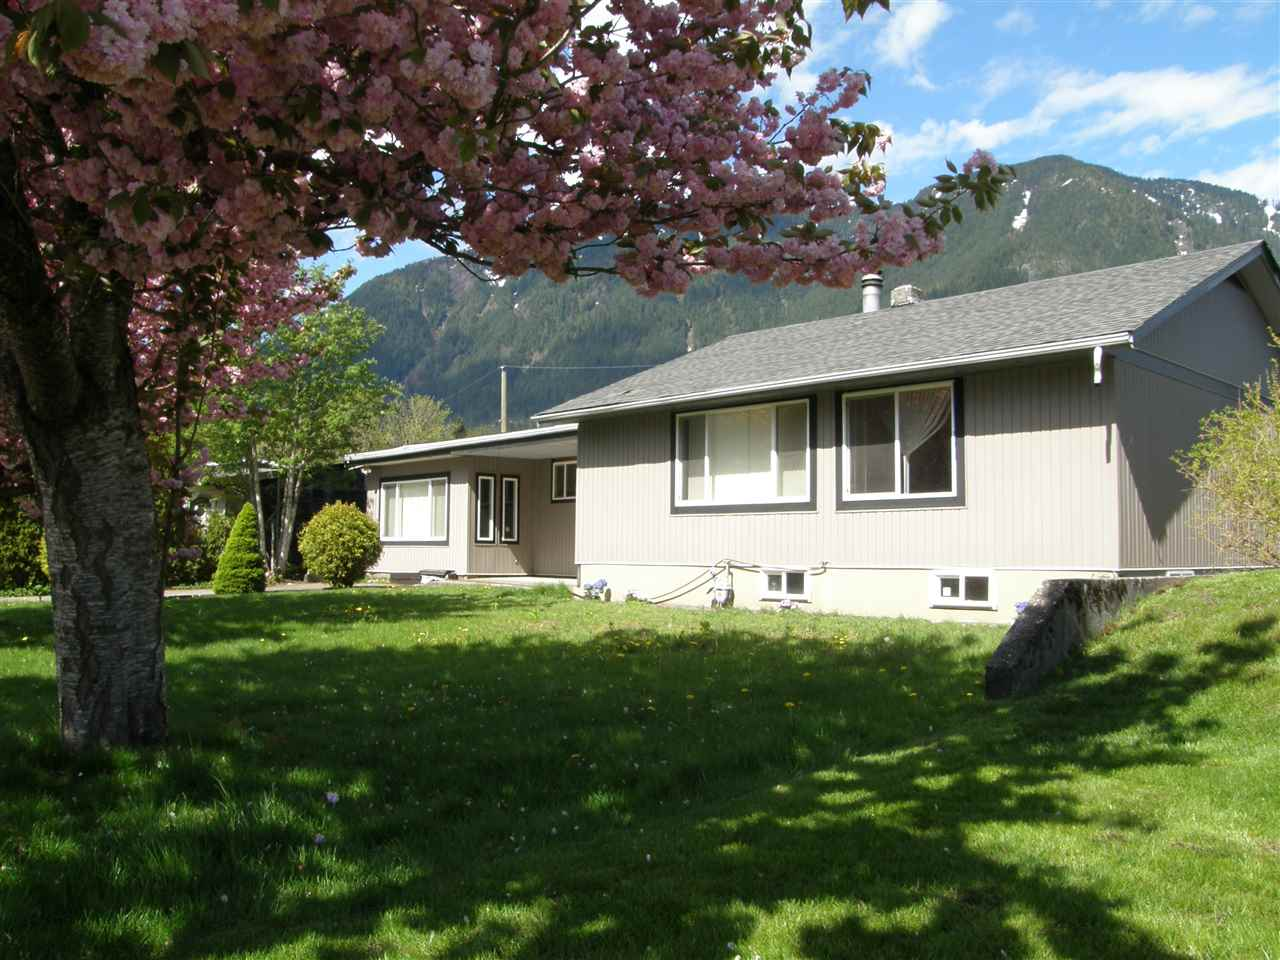 Family or retirement home located on a quiet street close to Fraser River fishing & walking trails. This spacious rancher is over 1750 sqft. on the main floor with an additional 900 sqft. part basement. There are 3 bedrooms, 2 bathrooms, newer windows, & roof. Just completed renovations include kitchen cabinets, counters, appliances, tile work, tile & laminate flooring & paint. The lot is a large 80' x 102' with lane access & room for a shop or garage. This is a sought after neighbourhood close to schools & shopping.